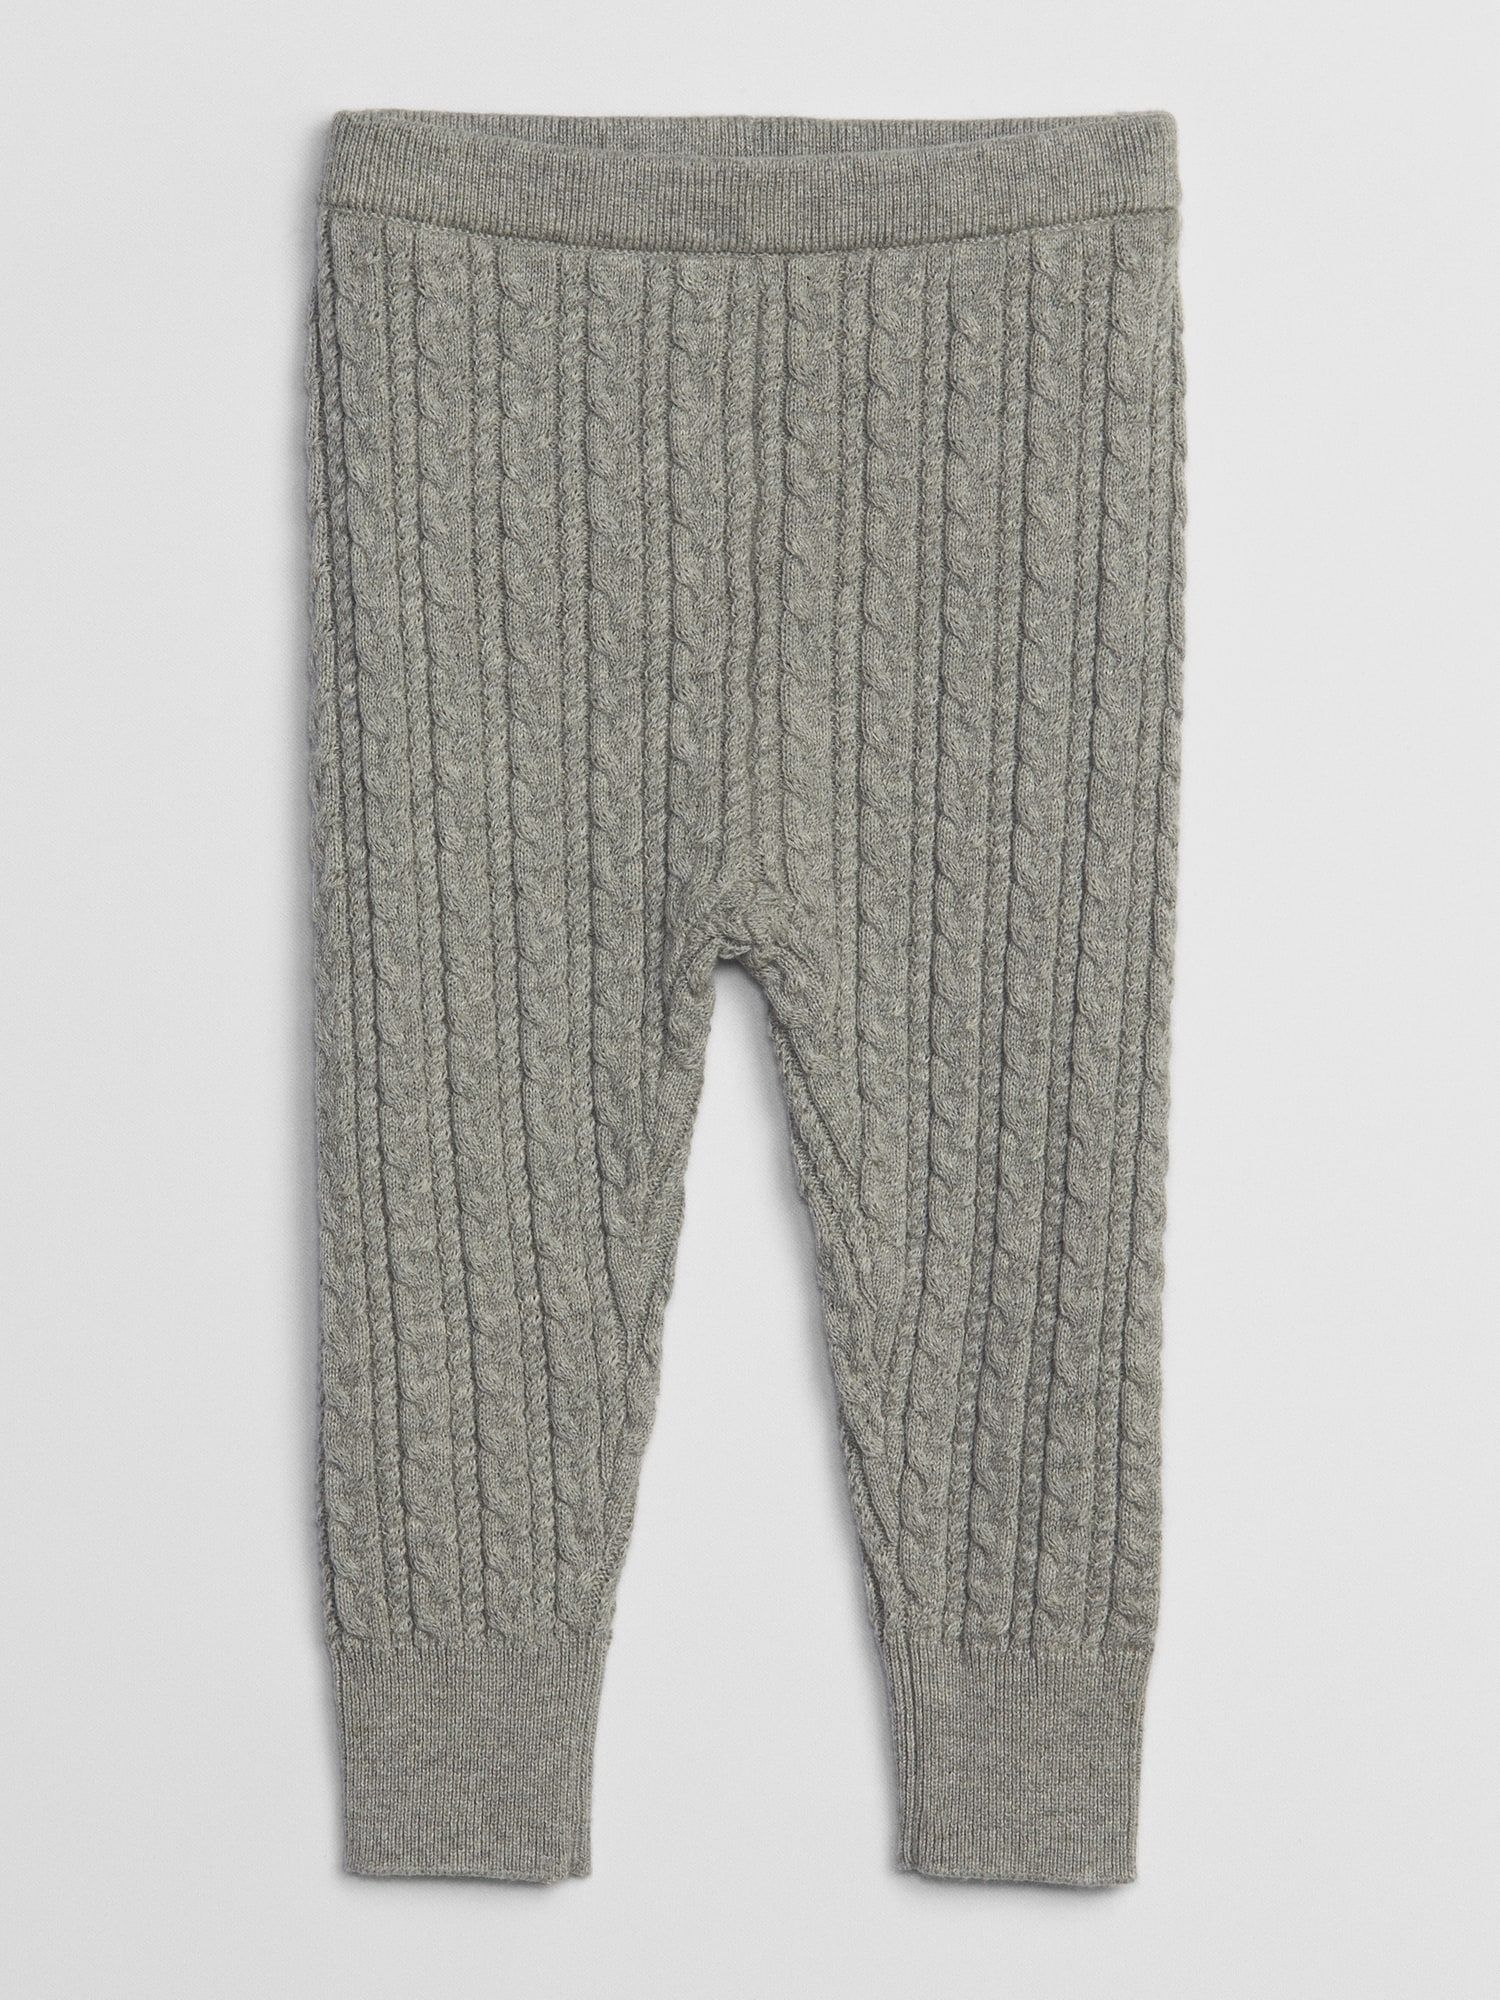 Gap Baby Baby Cable Knit Sweater Leggings Grey Heather Sweaters Leggings Cable Knit Sweaters Cable Knit